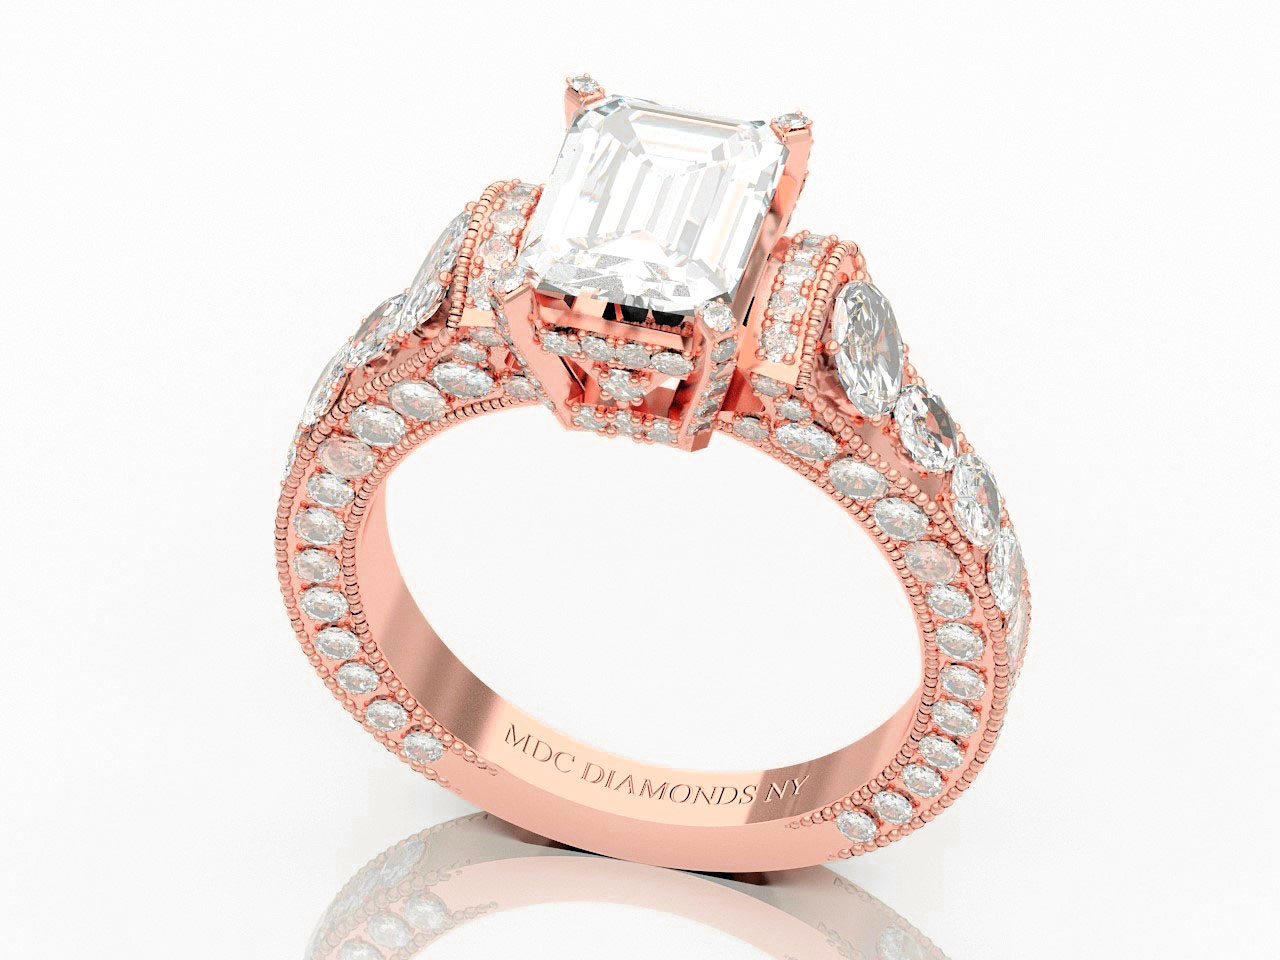 Large Emerald Cut Diamond Cathedral Graduated Pave Engagement Ring 1.25 tcw. In 14K Rose Gold